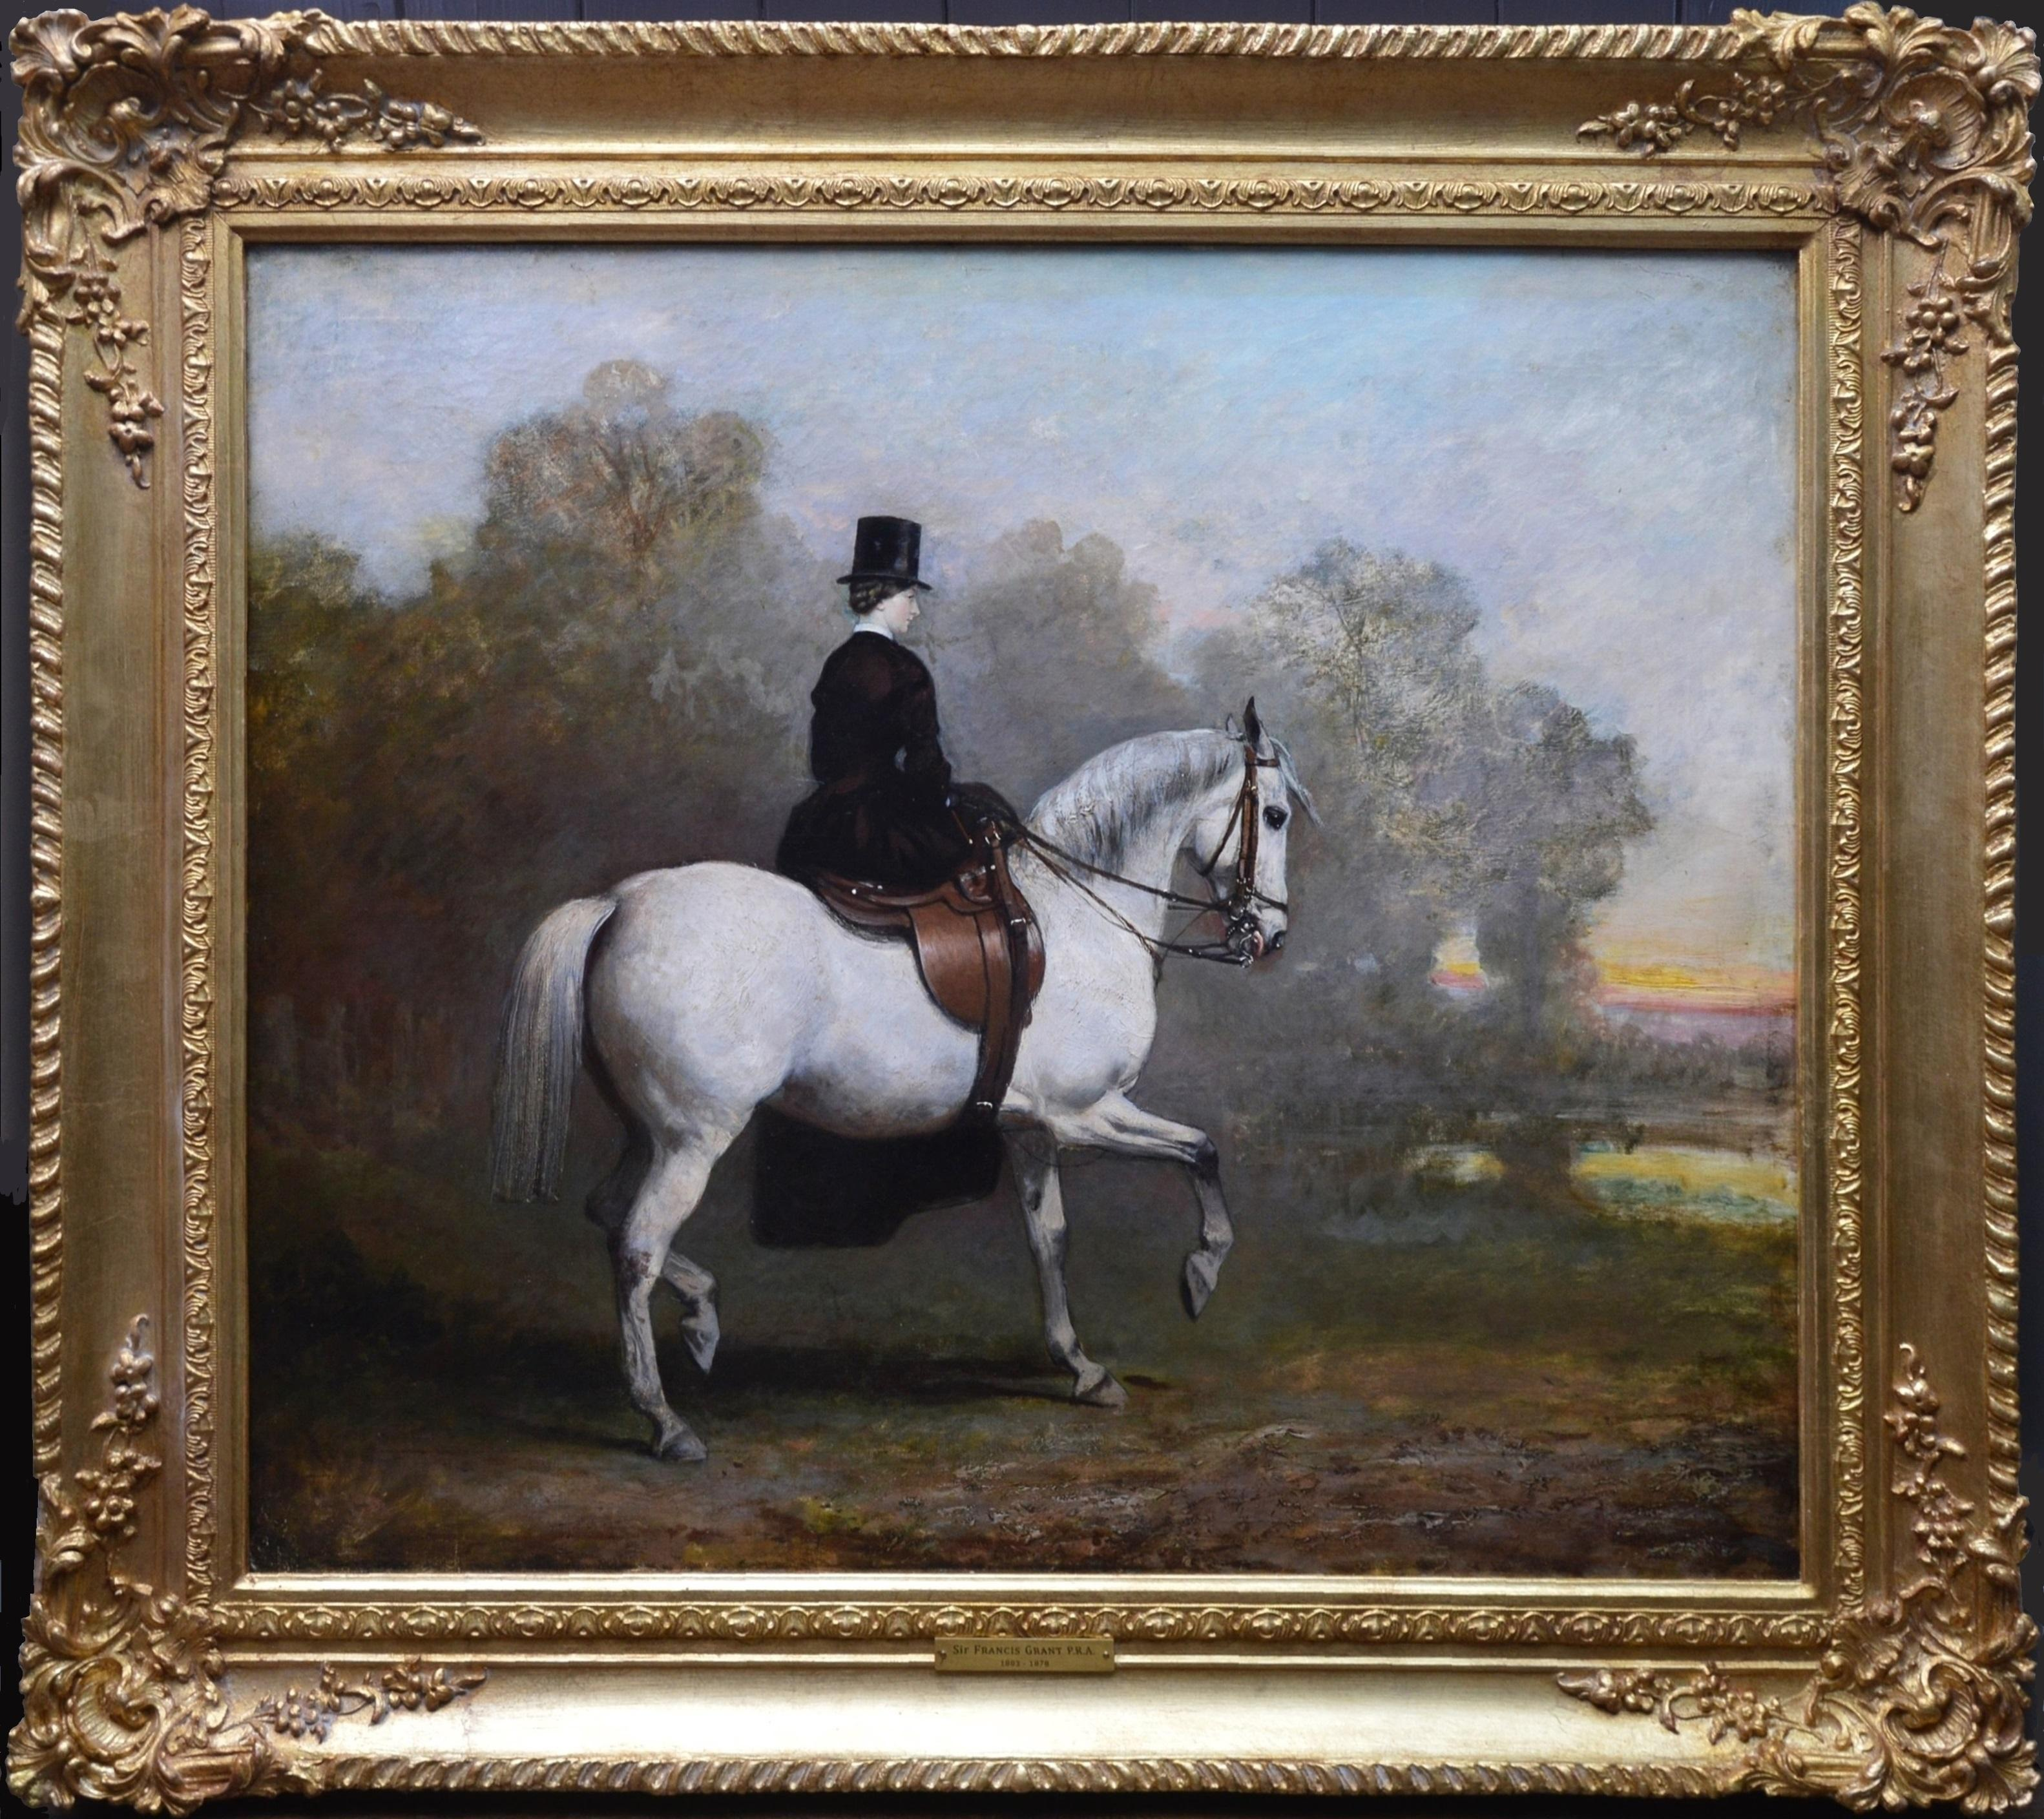 Portrait of an Elegant Lady on a White Hunter - Mid 19th Century Oil Painting